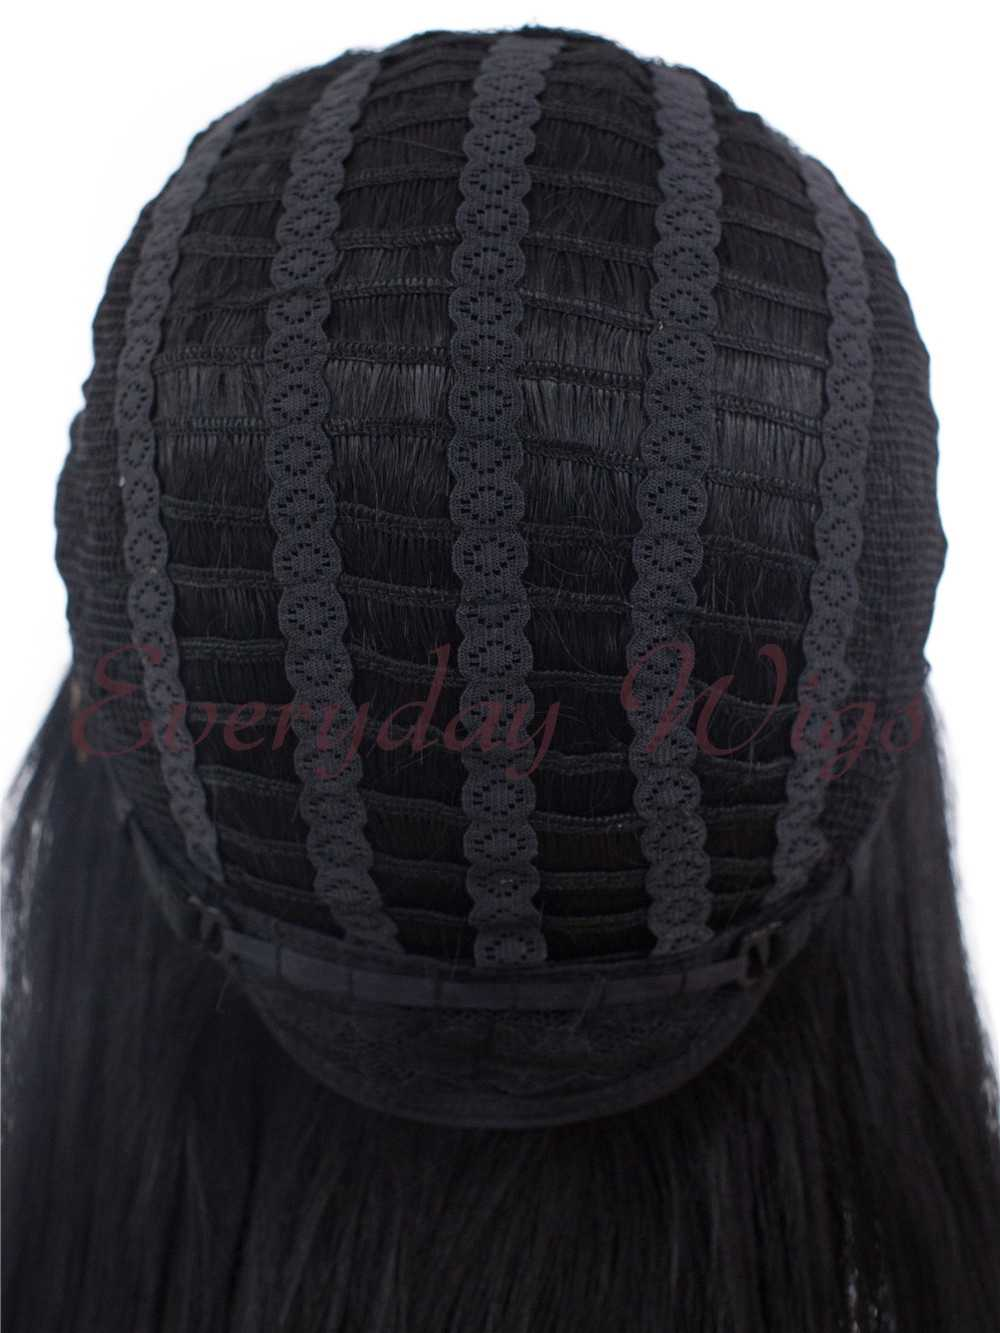 "24"" Wefted Cap Black Synthetic Wig with bangs - edw040"